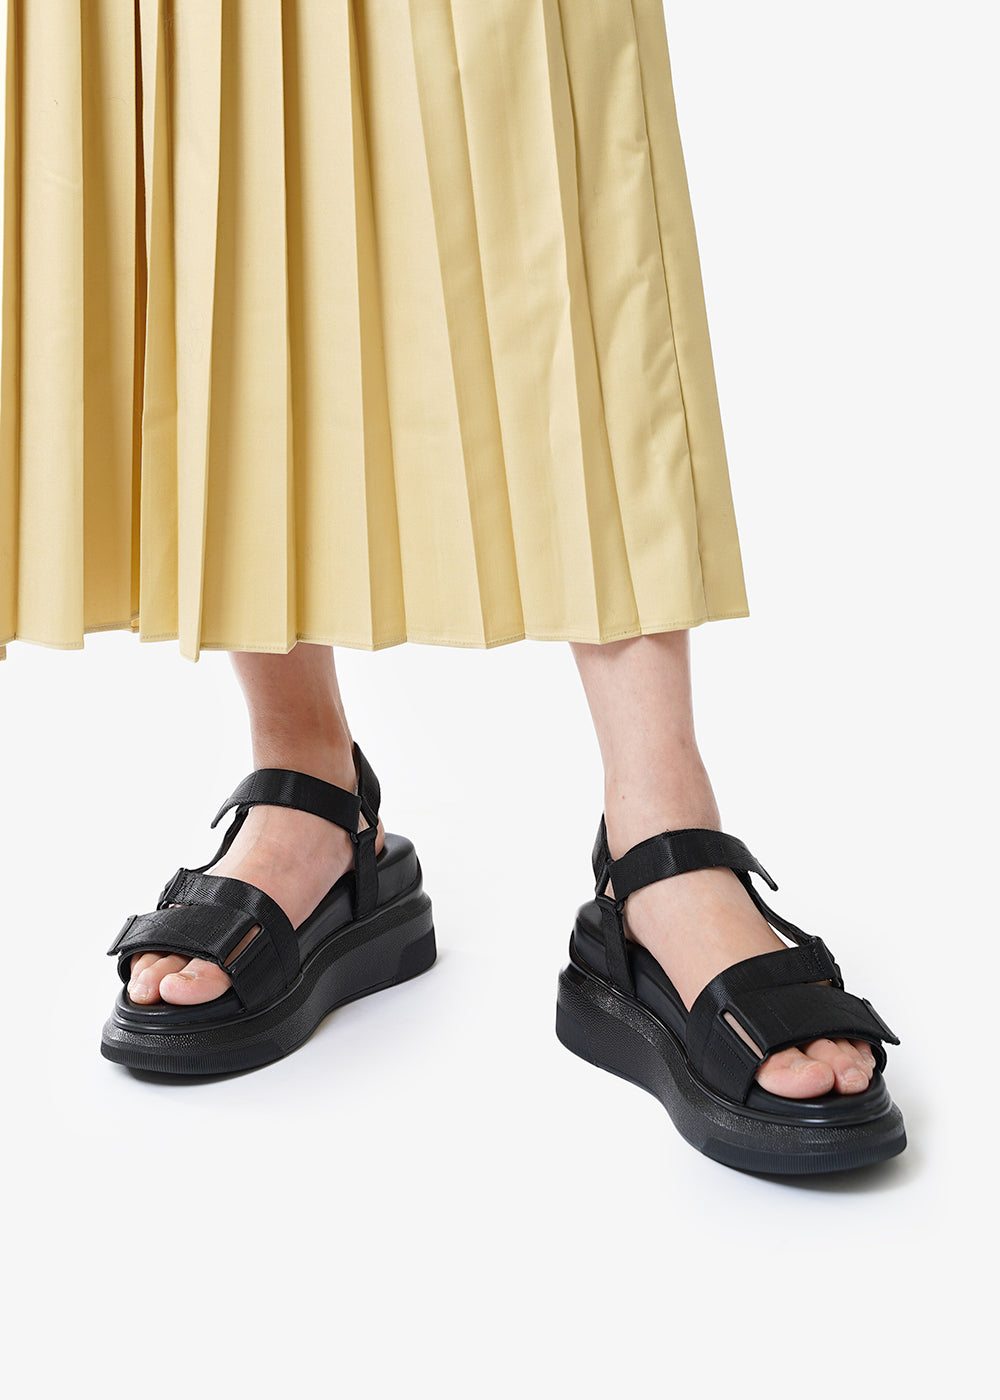 Suzanne Rae Black Velcro Sandals — Shop sustainable fashion and slow fashion at New Classics Studios